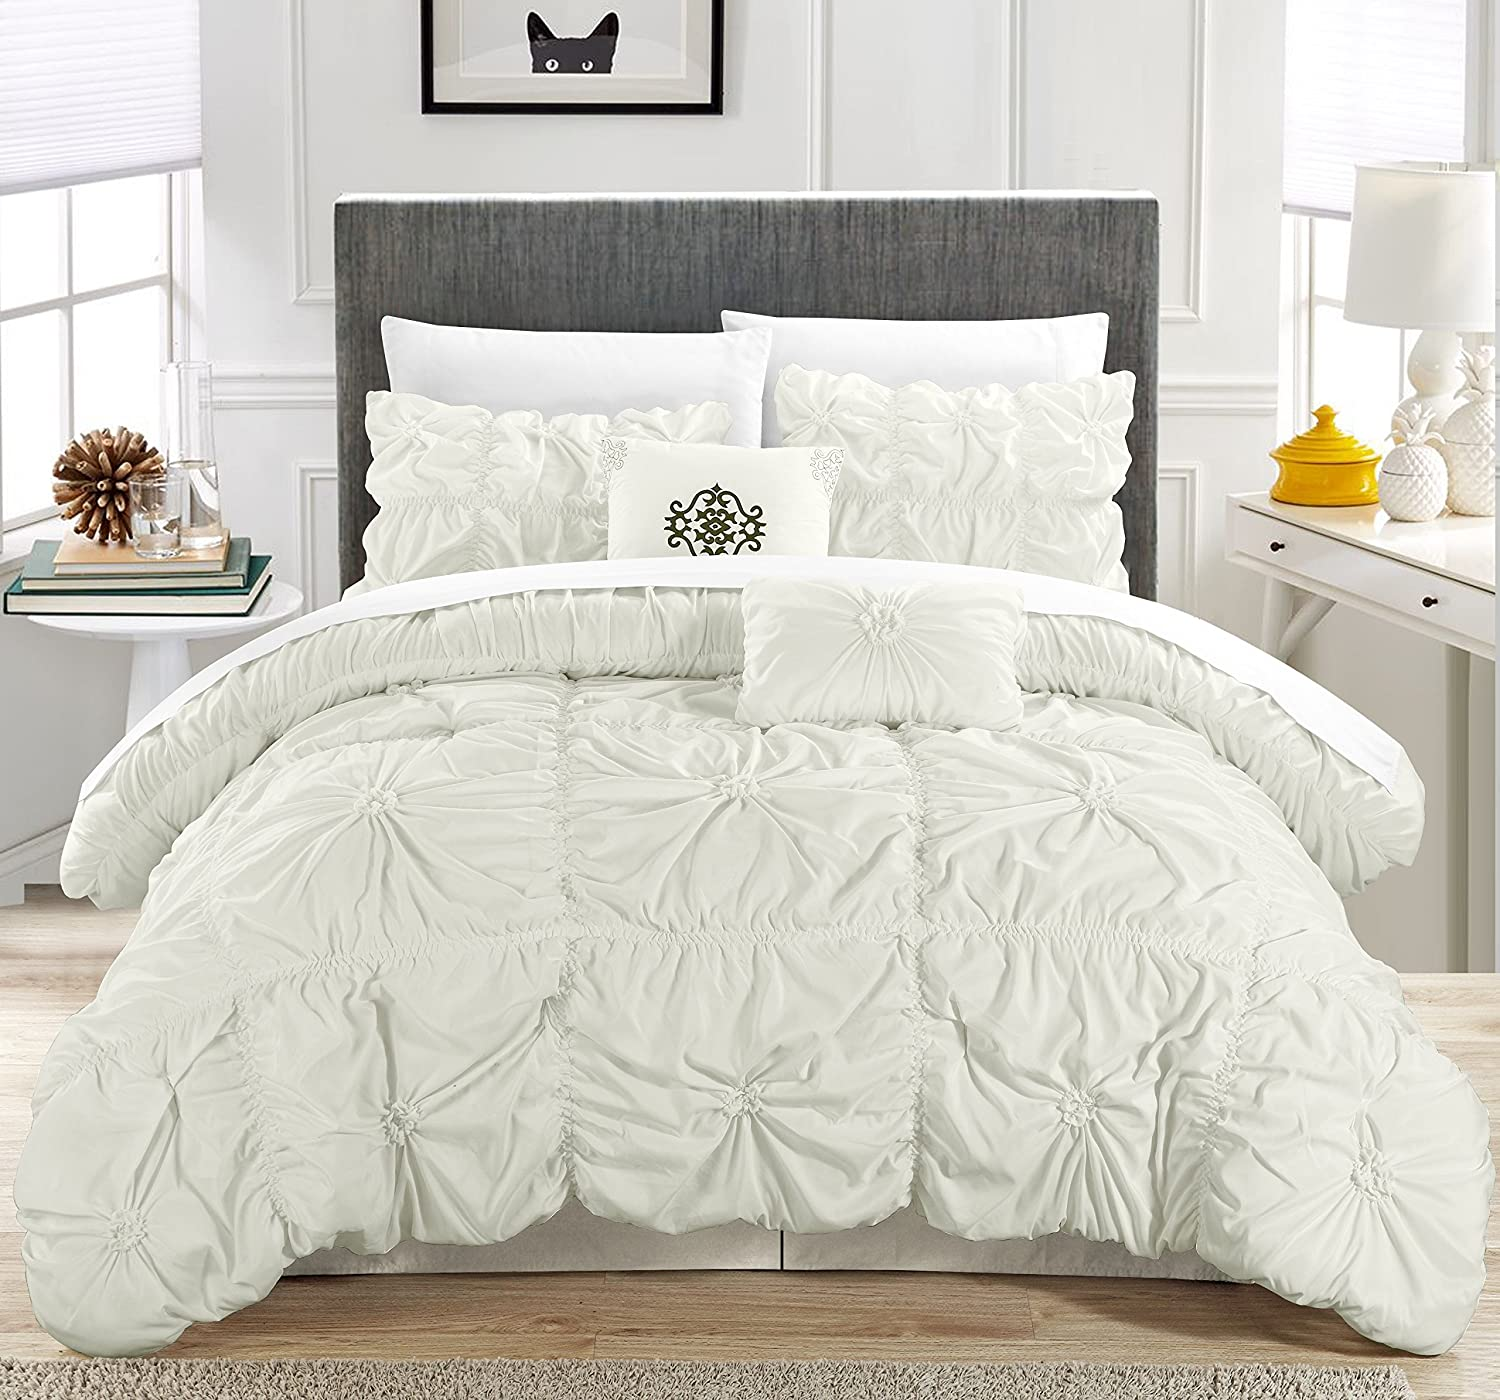 fluffy know comforters is luxurious big we new just re quality sets when comforter you online shop comfort linens with edmonton home white looking and important how pin in for beds